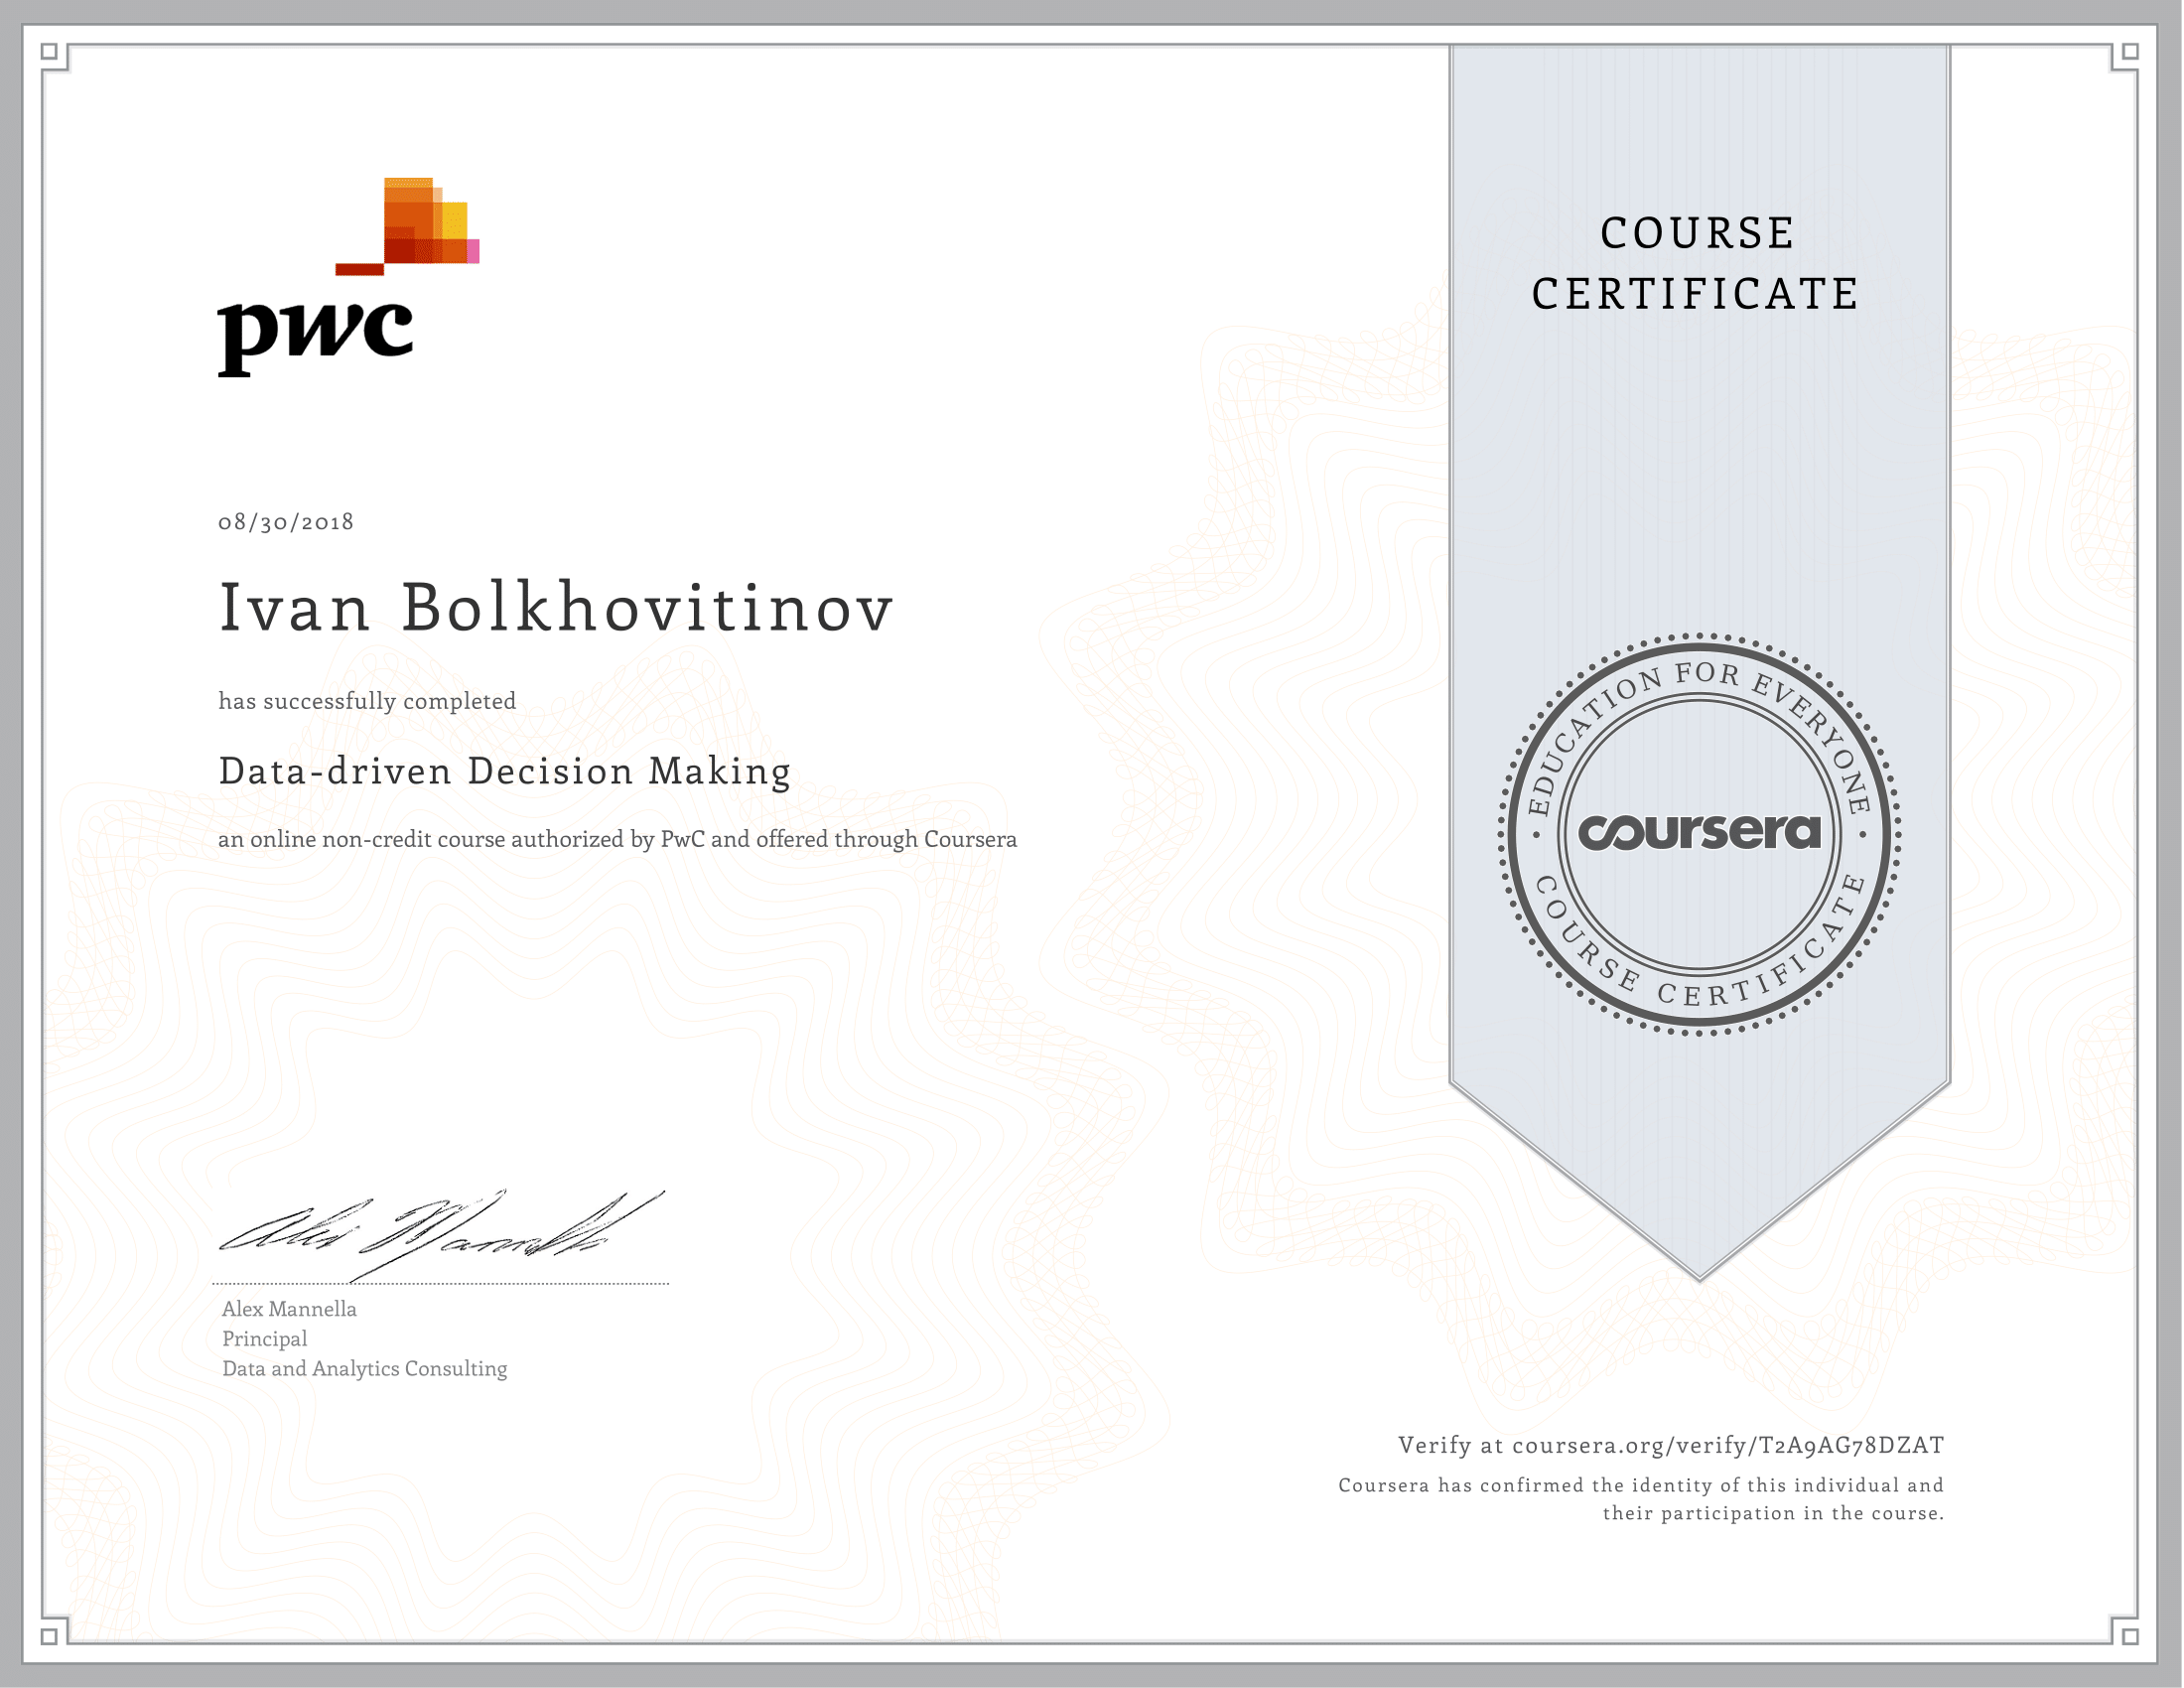 Coursera - PwC - Data-driven Decision Making